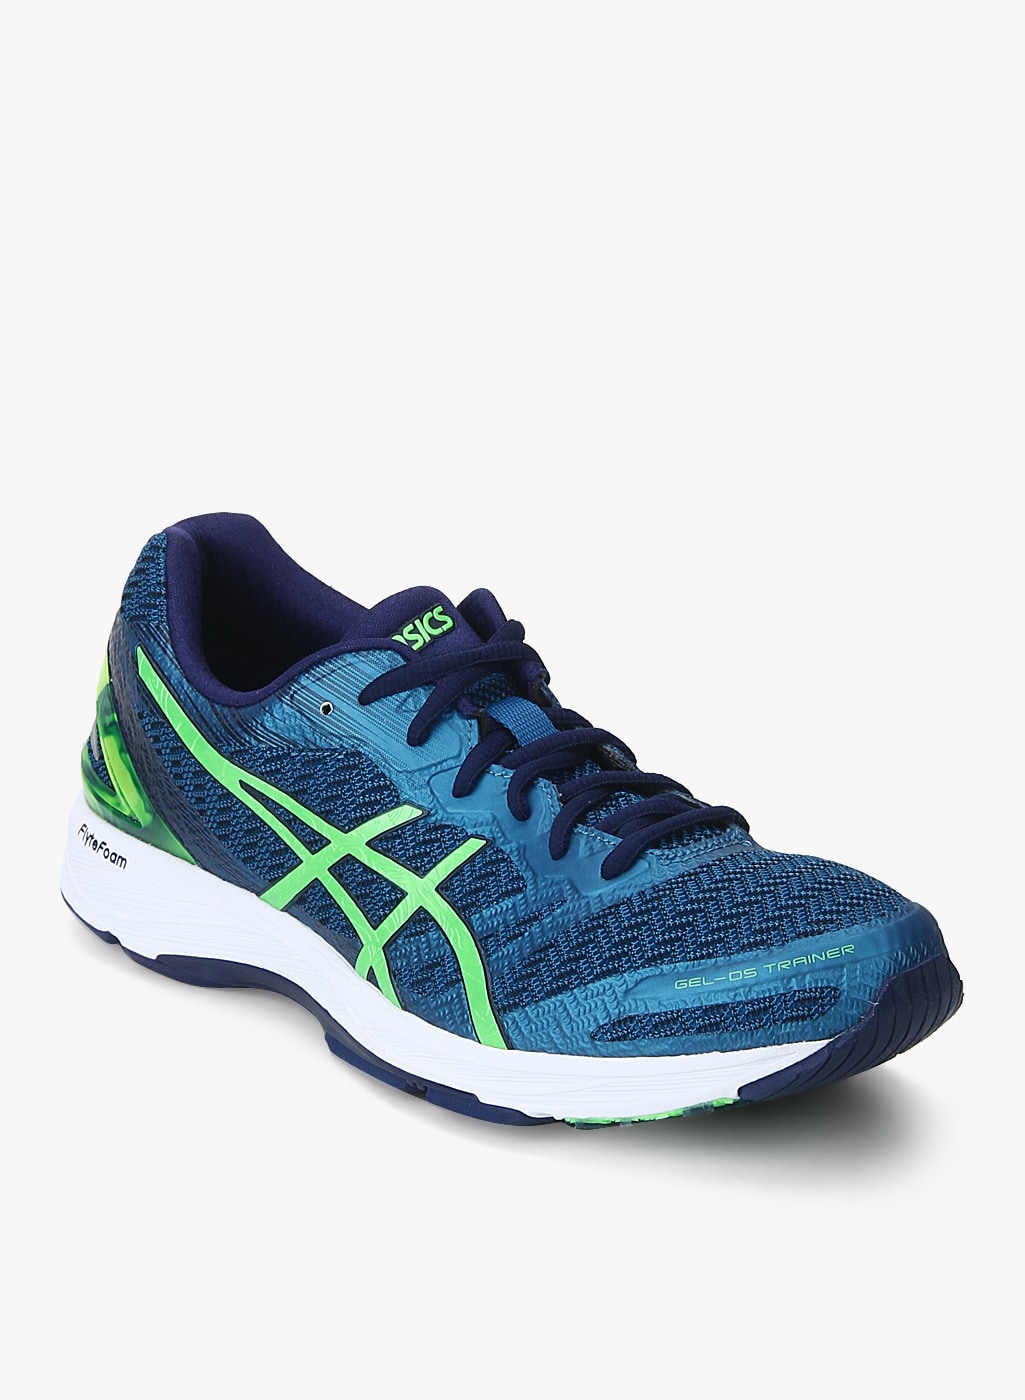 new styles b777b 4de47 ASICS Gel-Ds Trainer 22 Grey Running Shoes